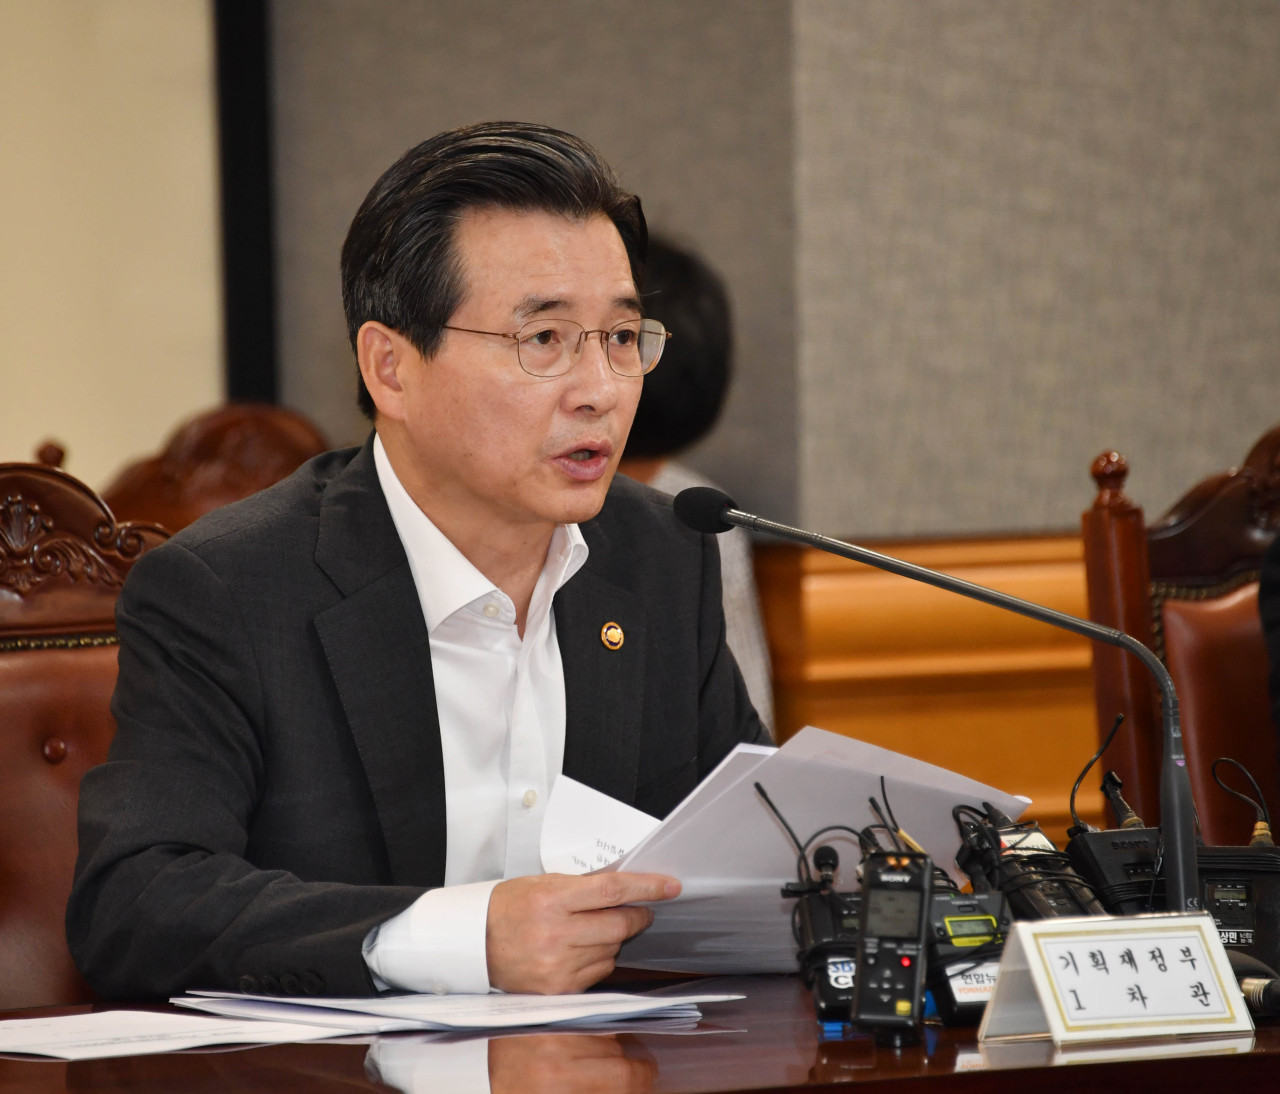 Kim Yong-beom, first vice minister of finance, speaks in a meeting of senior economic policymakers on Tuesday. (Ministry of Economy and Finance)